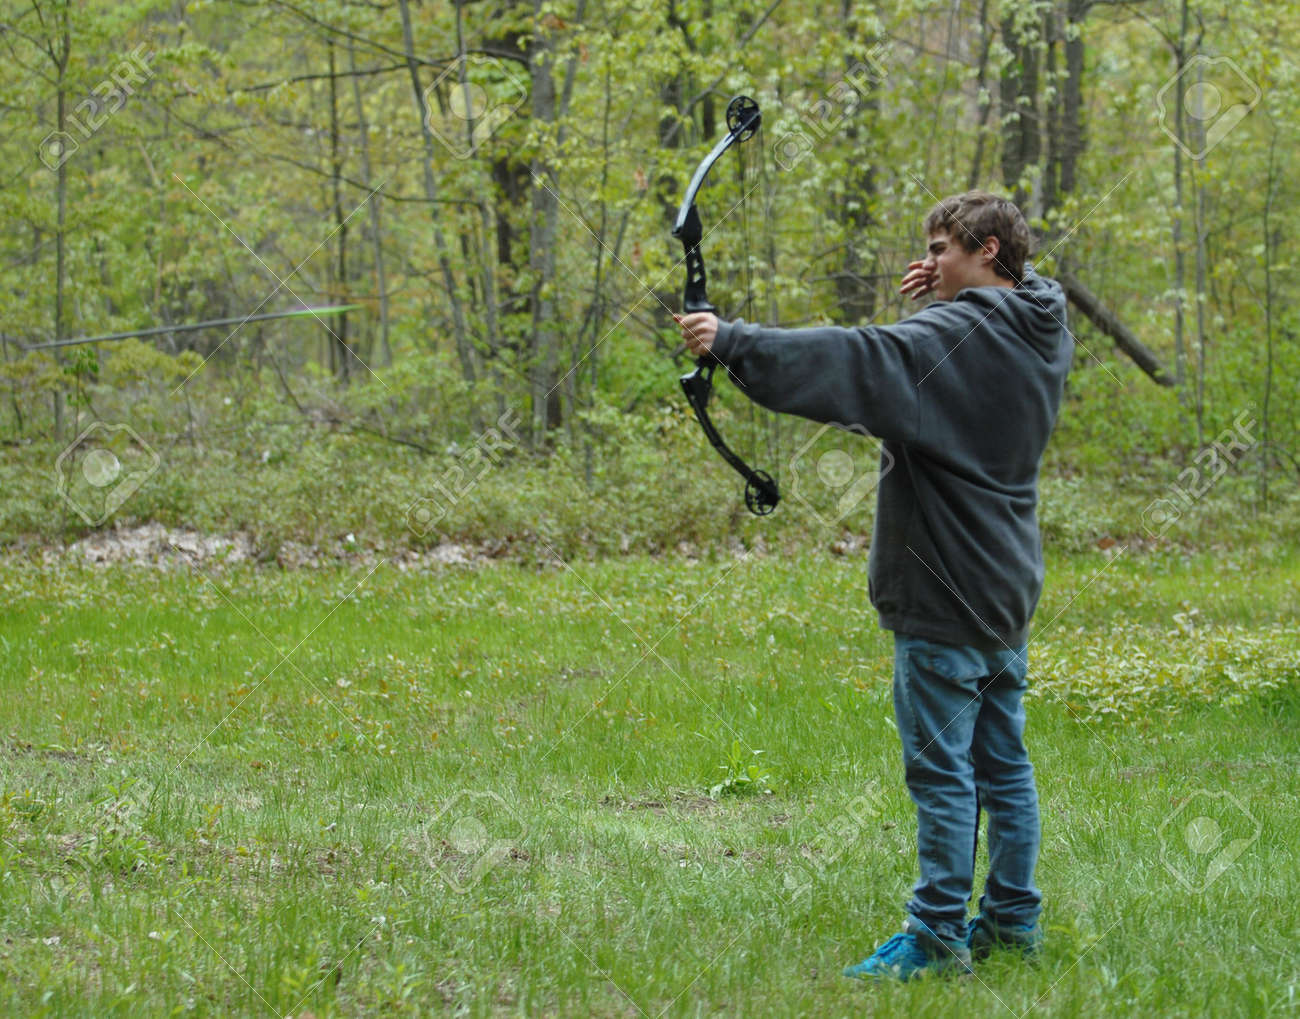 ef486cd0c5db teenage boy shooting compound bow with arrow in the scene Stock Photo -  4992929